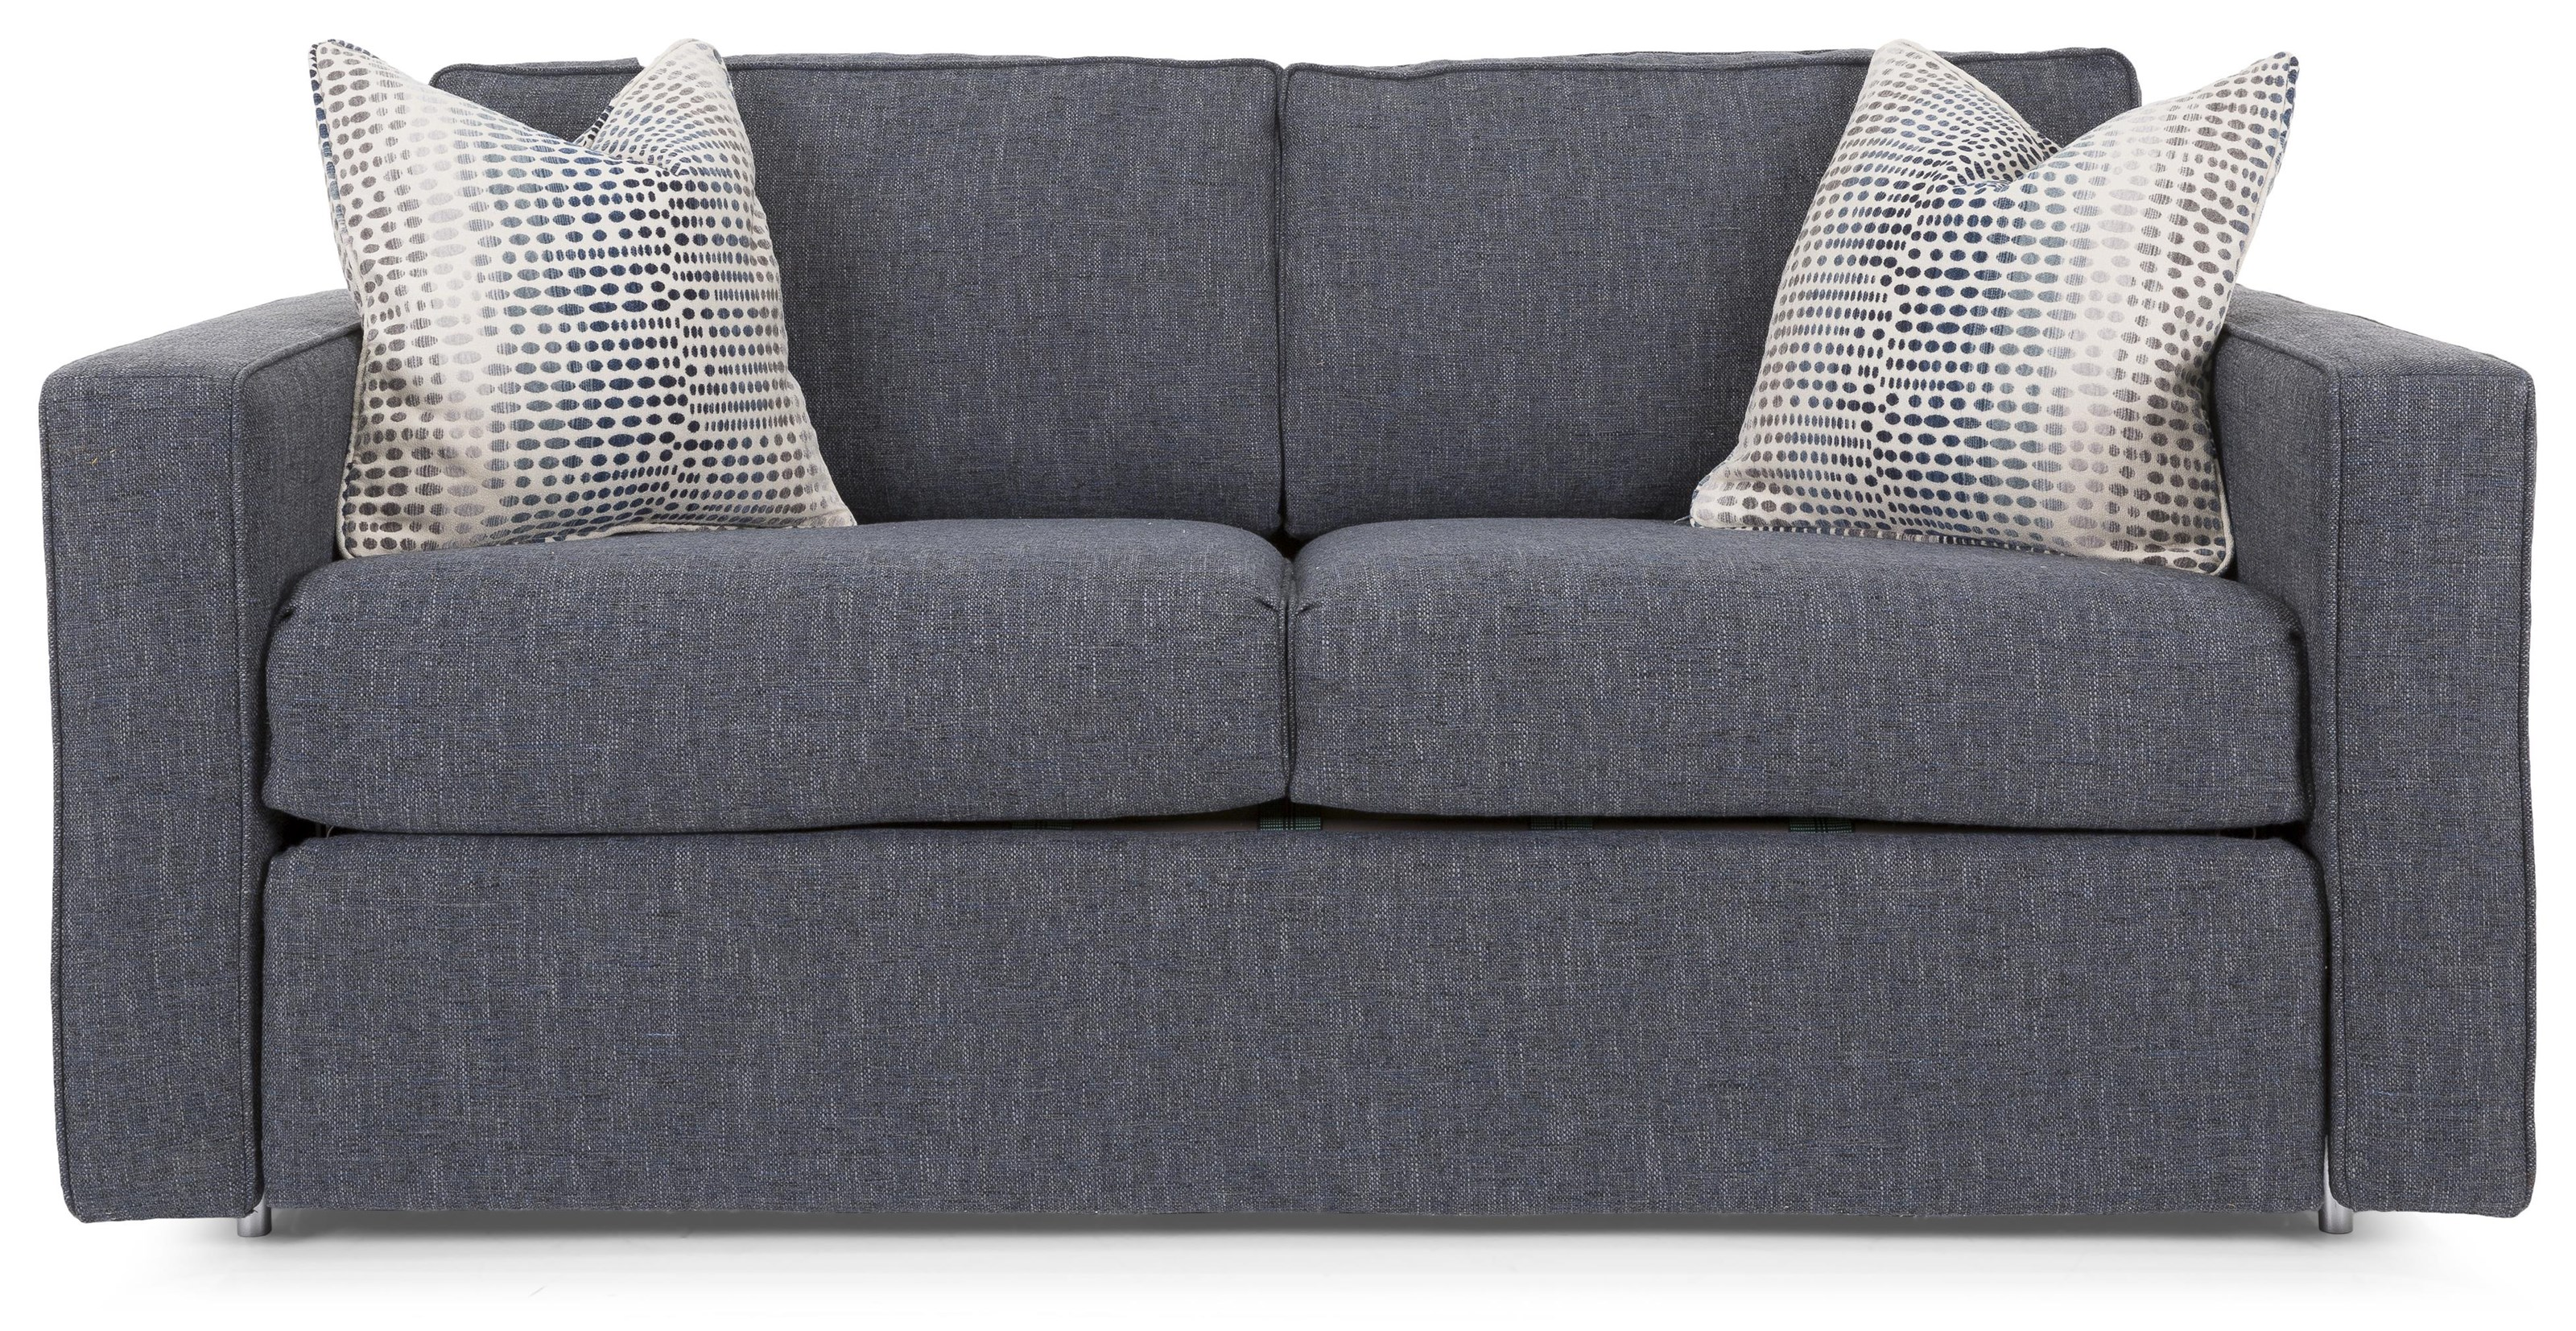 Calico Double Sofabed by Taelor Designs at Bennett's Furniture and Mattresses